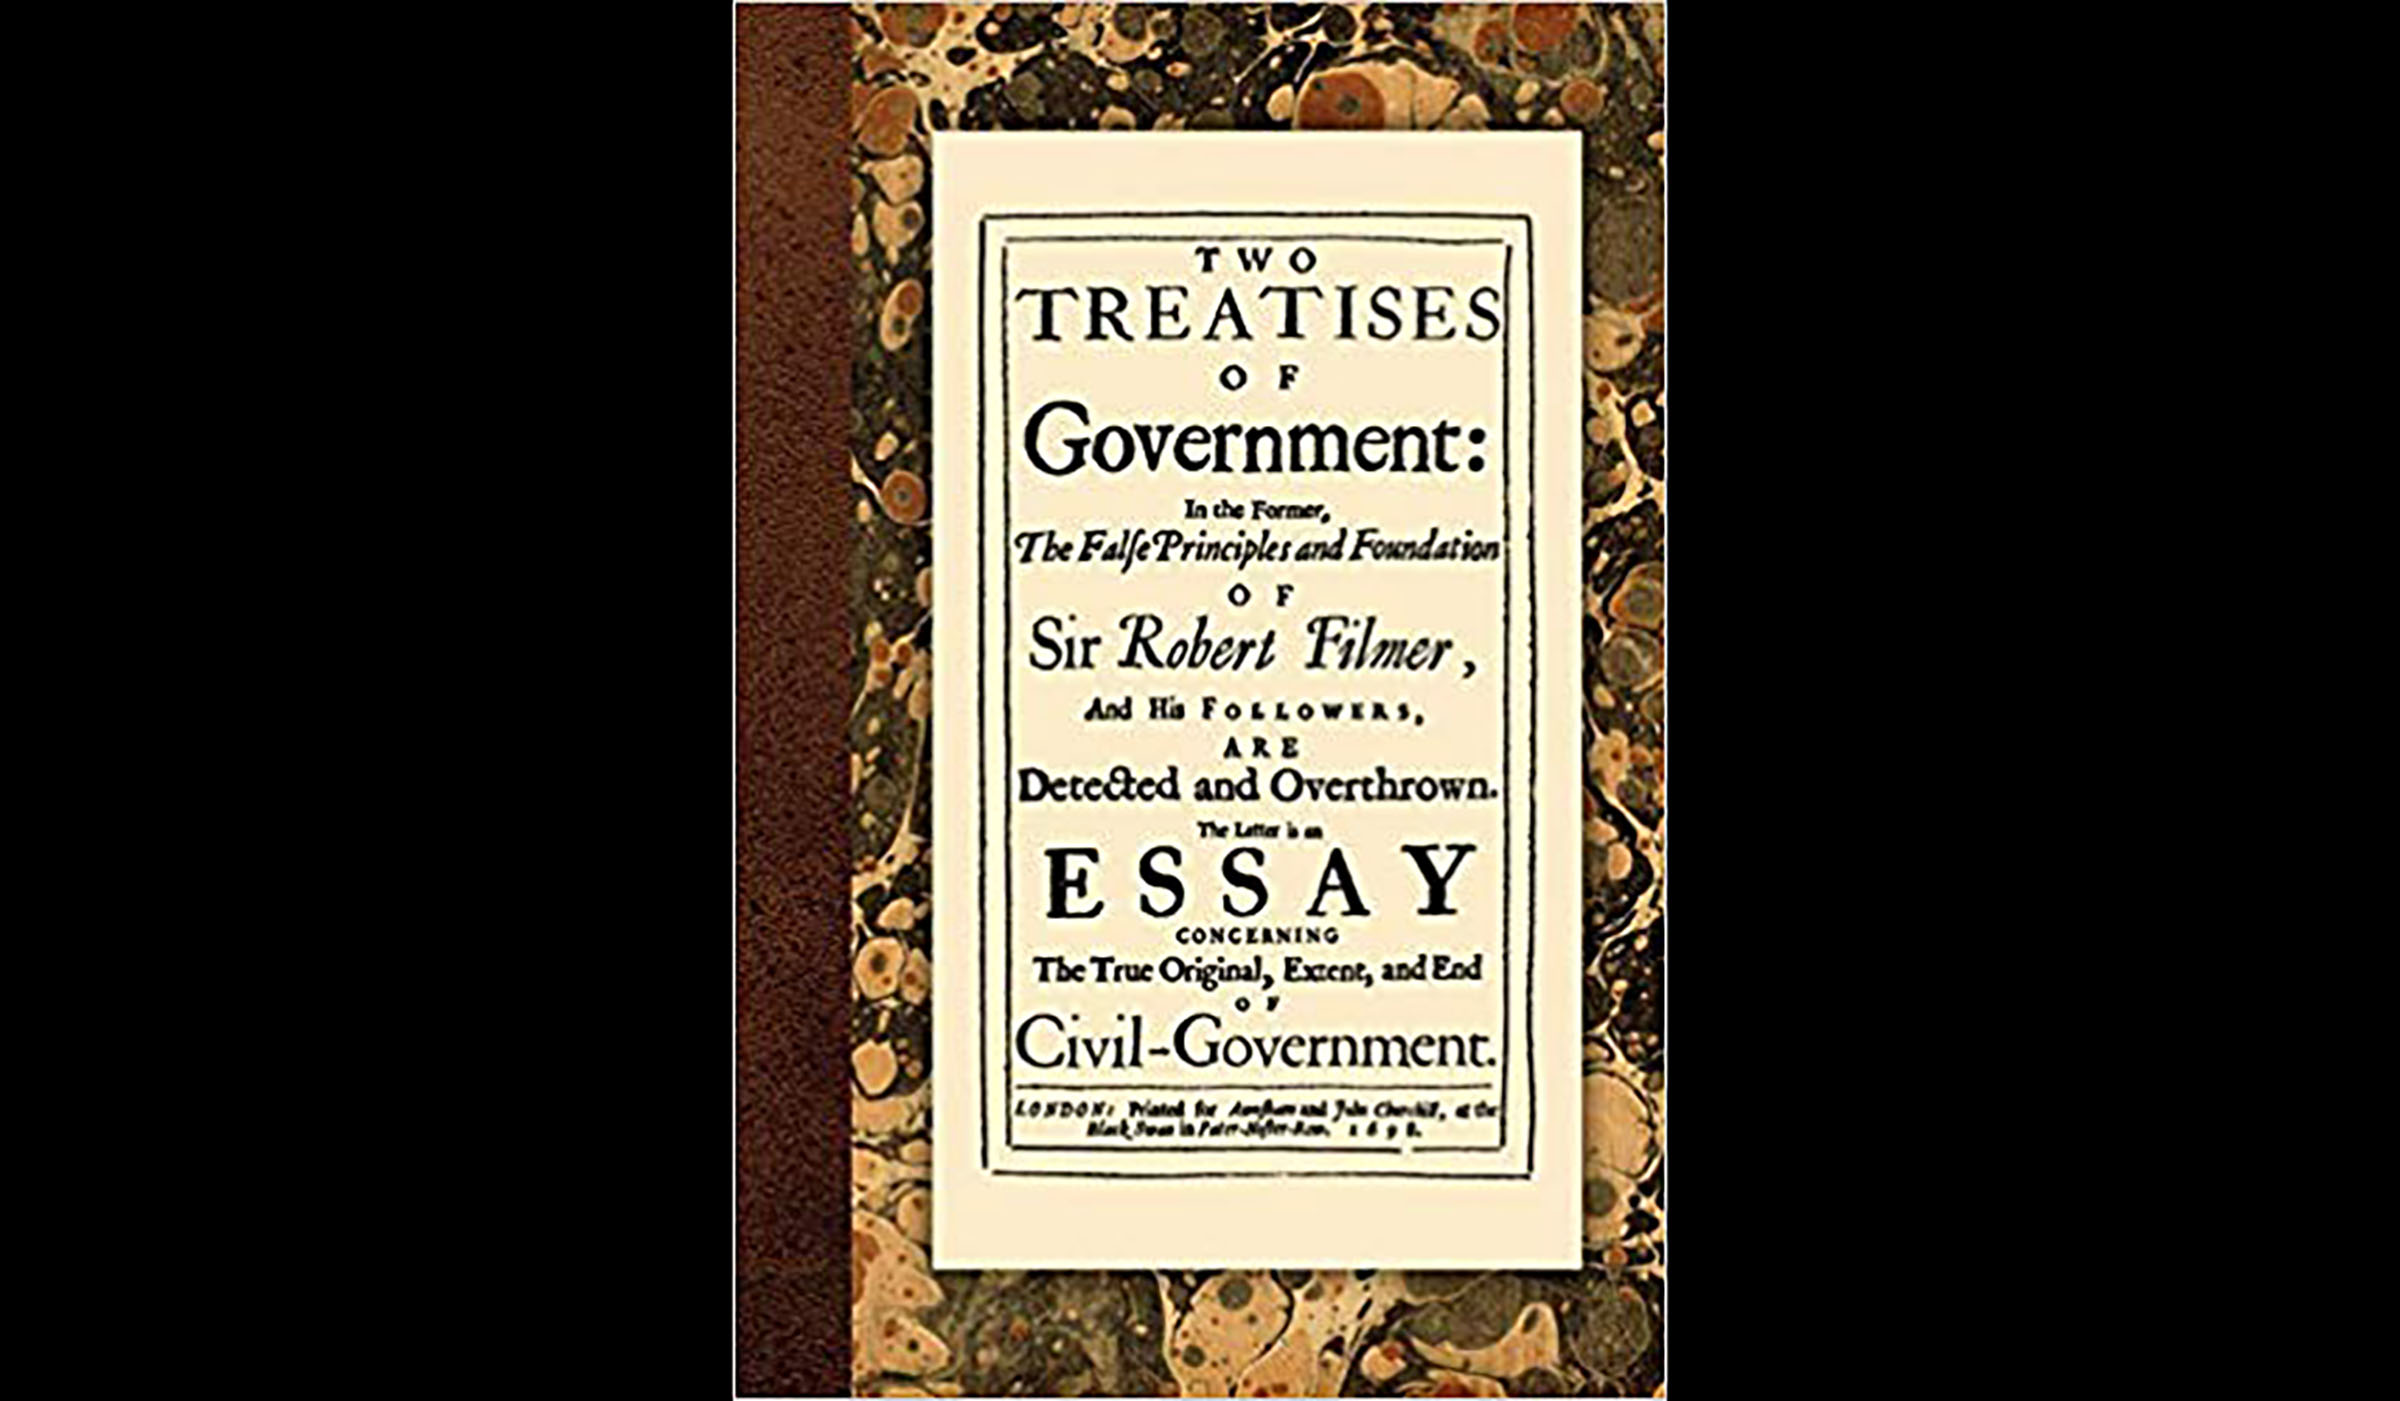 Episode 103: Two Treatises of Government, by John Locke